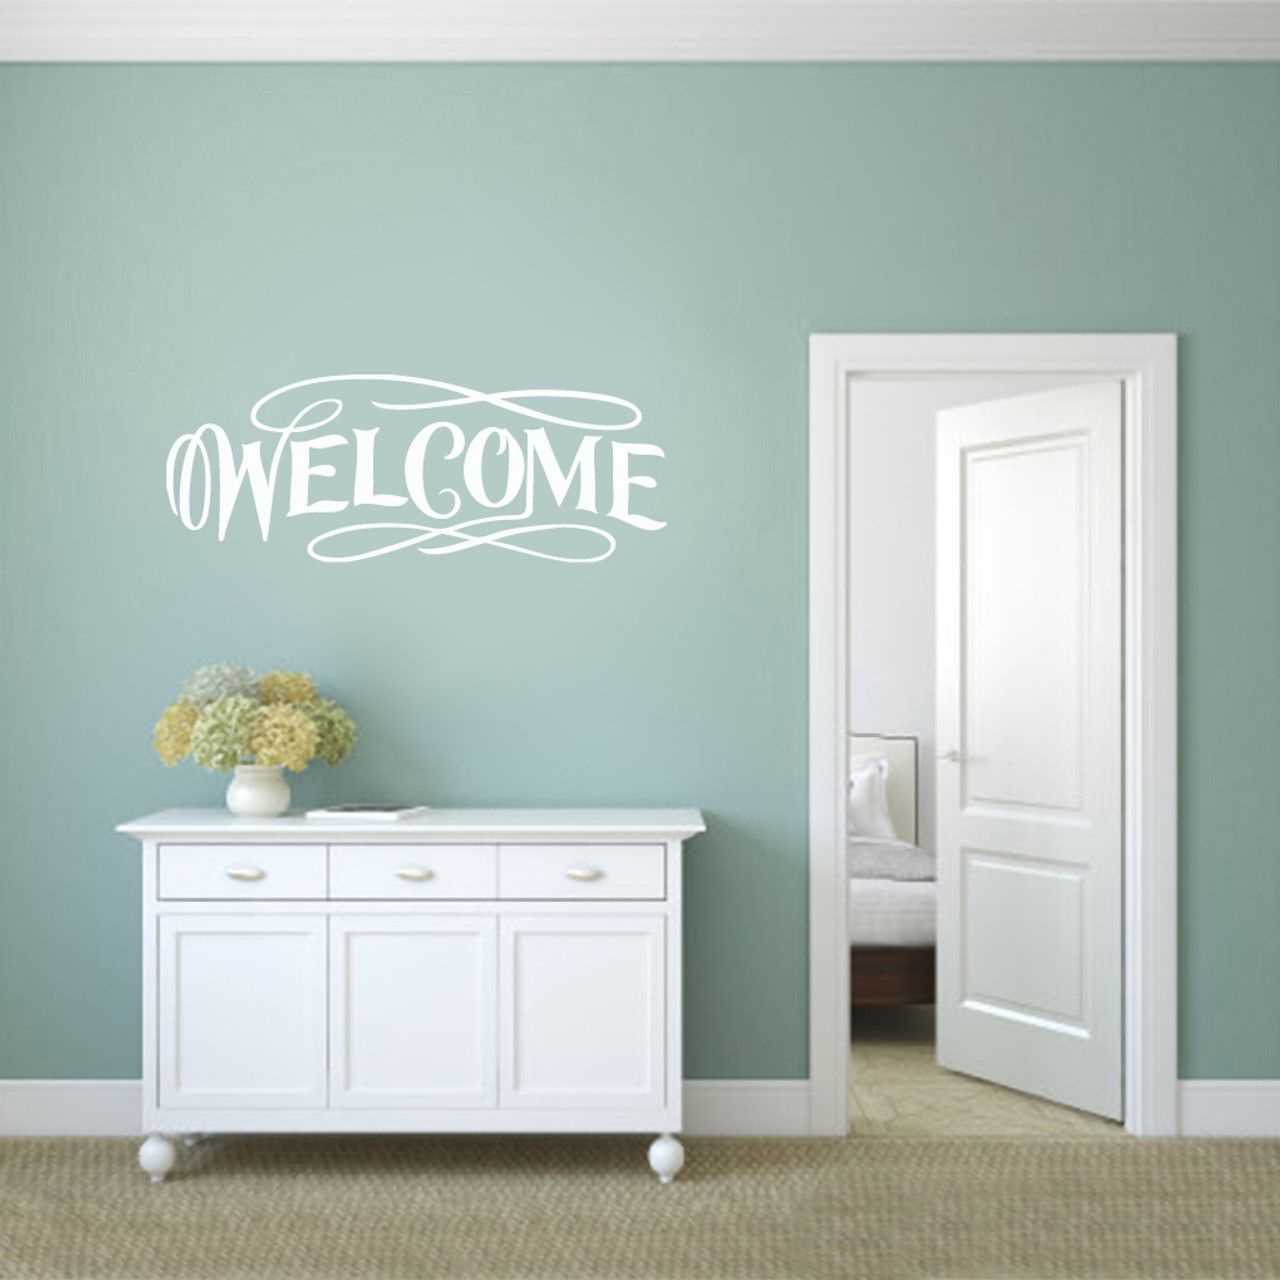 Fancy Welcome Wall Decals Wall Decor Stickers